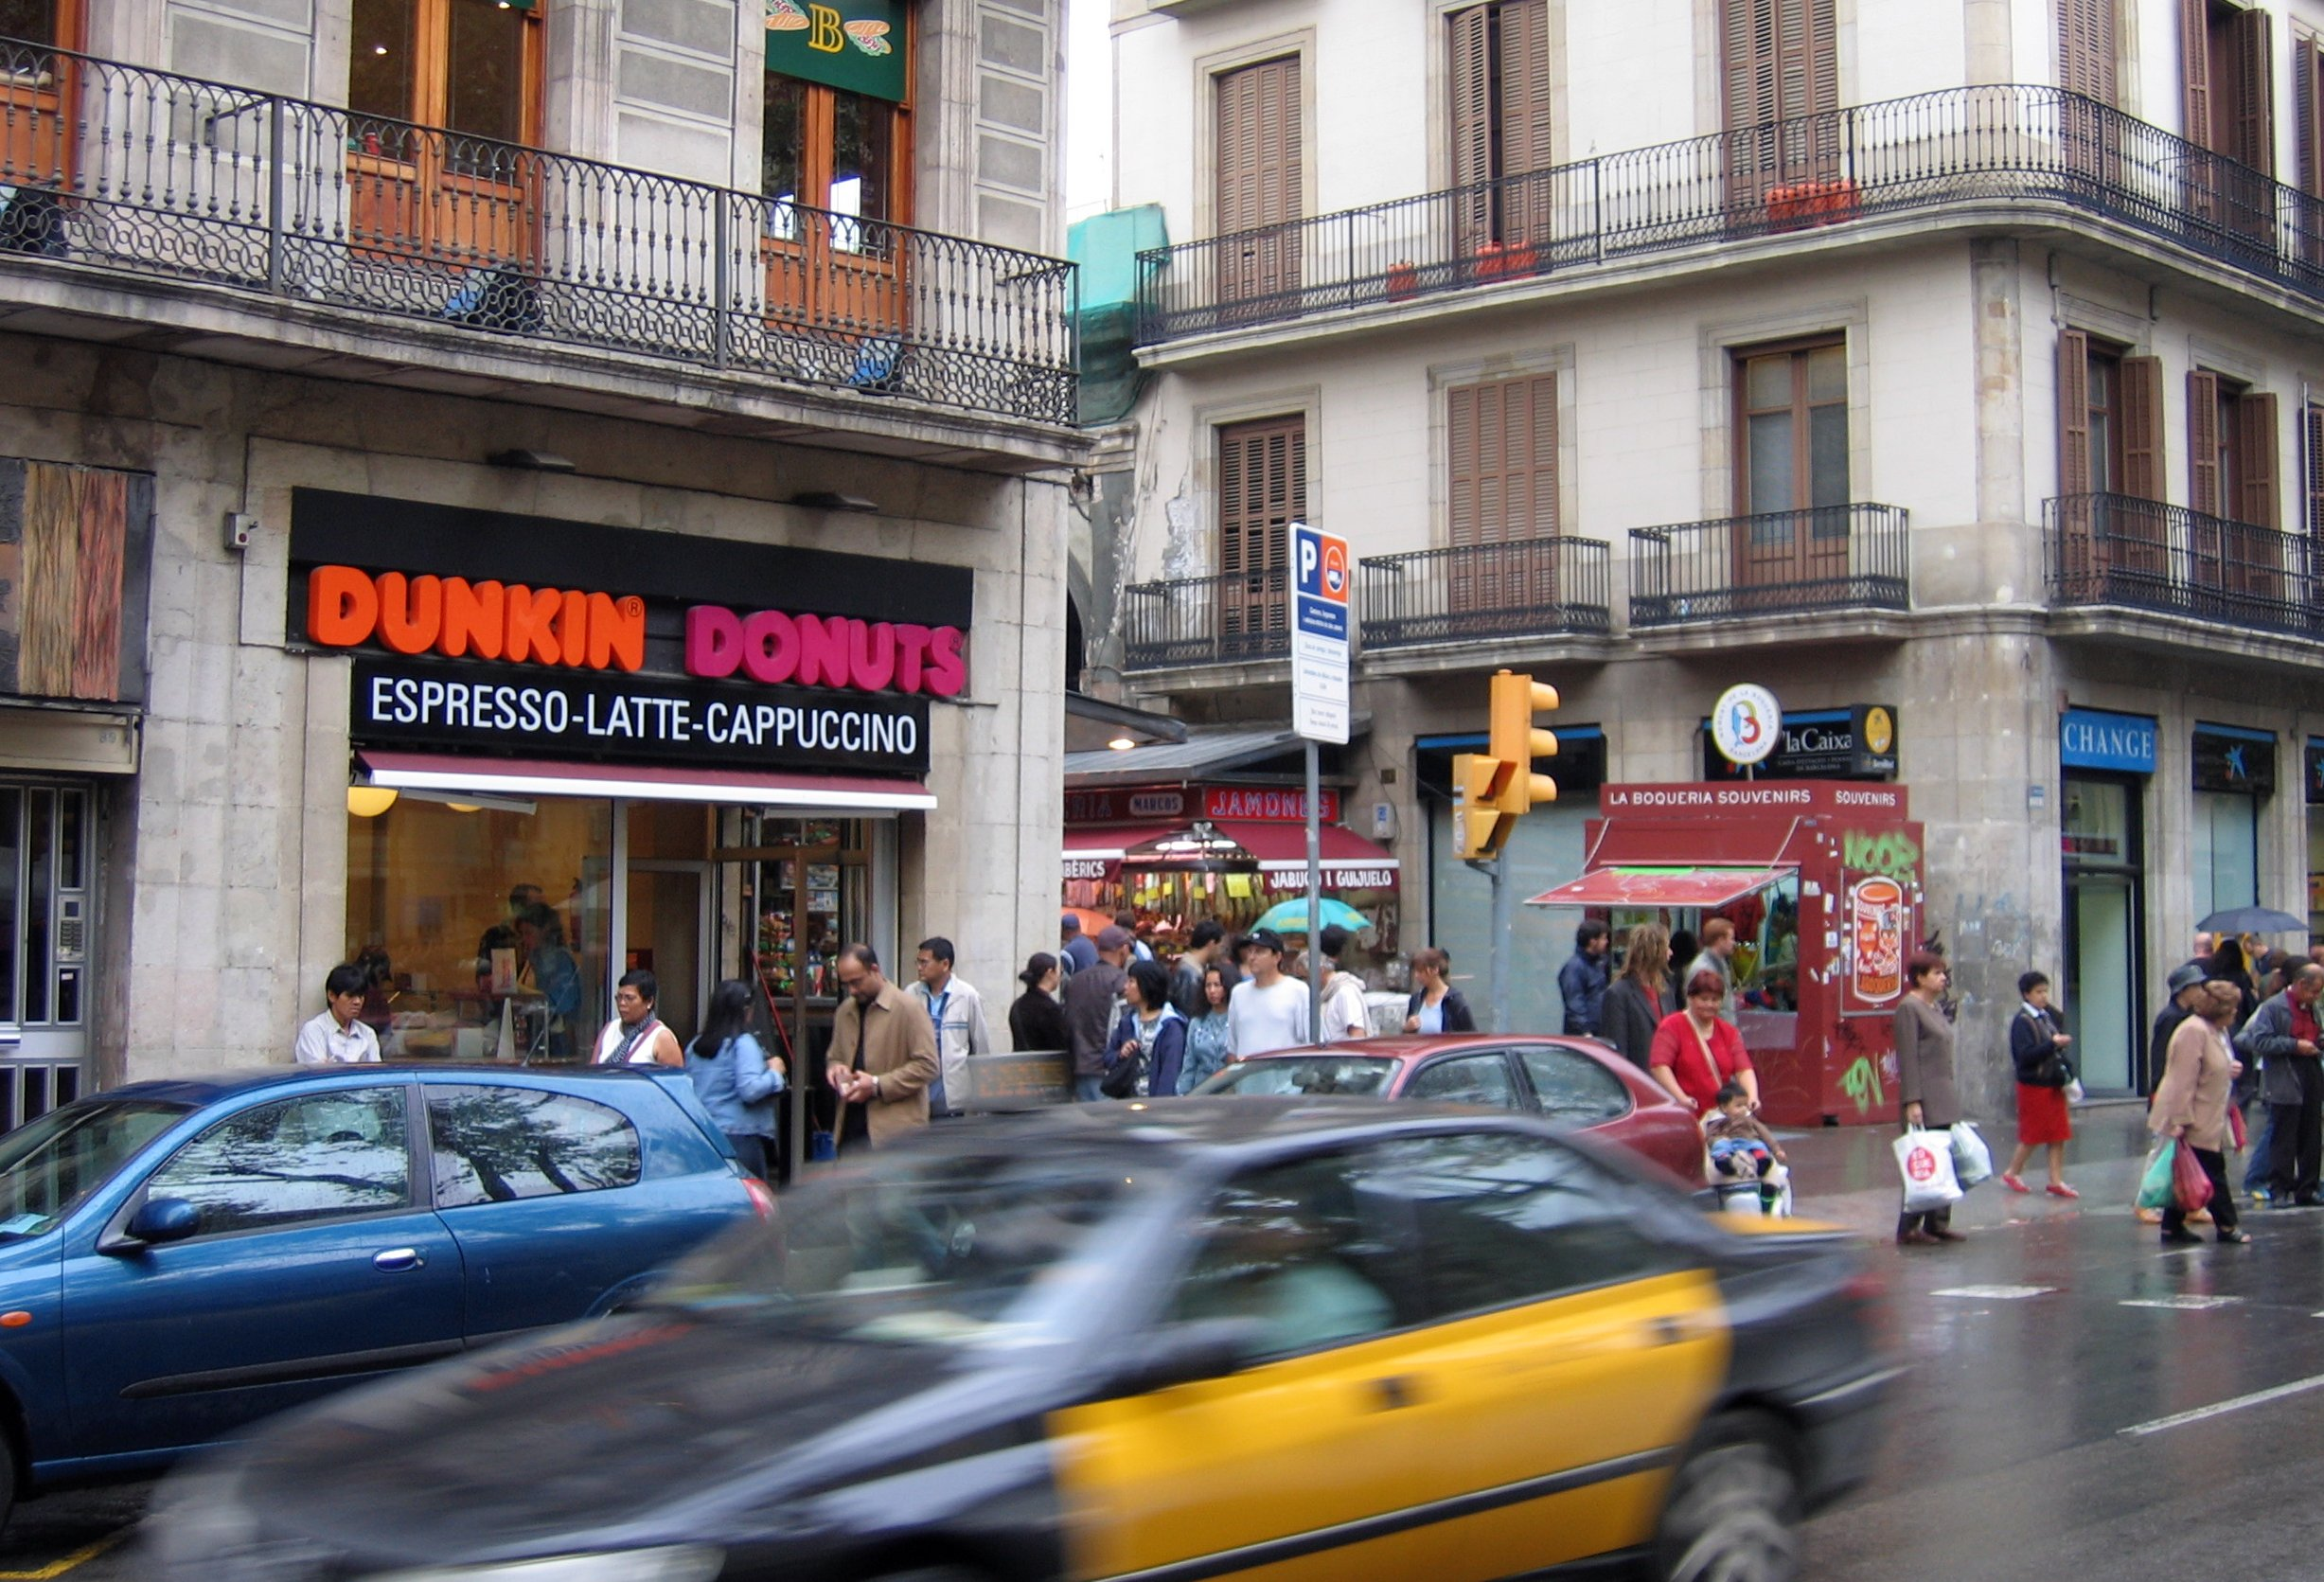 A Dunkin' Donuts outlet in Barcelona.